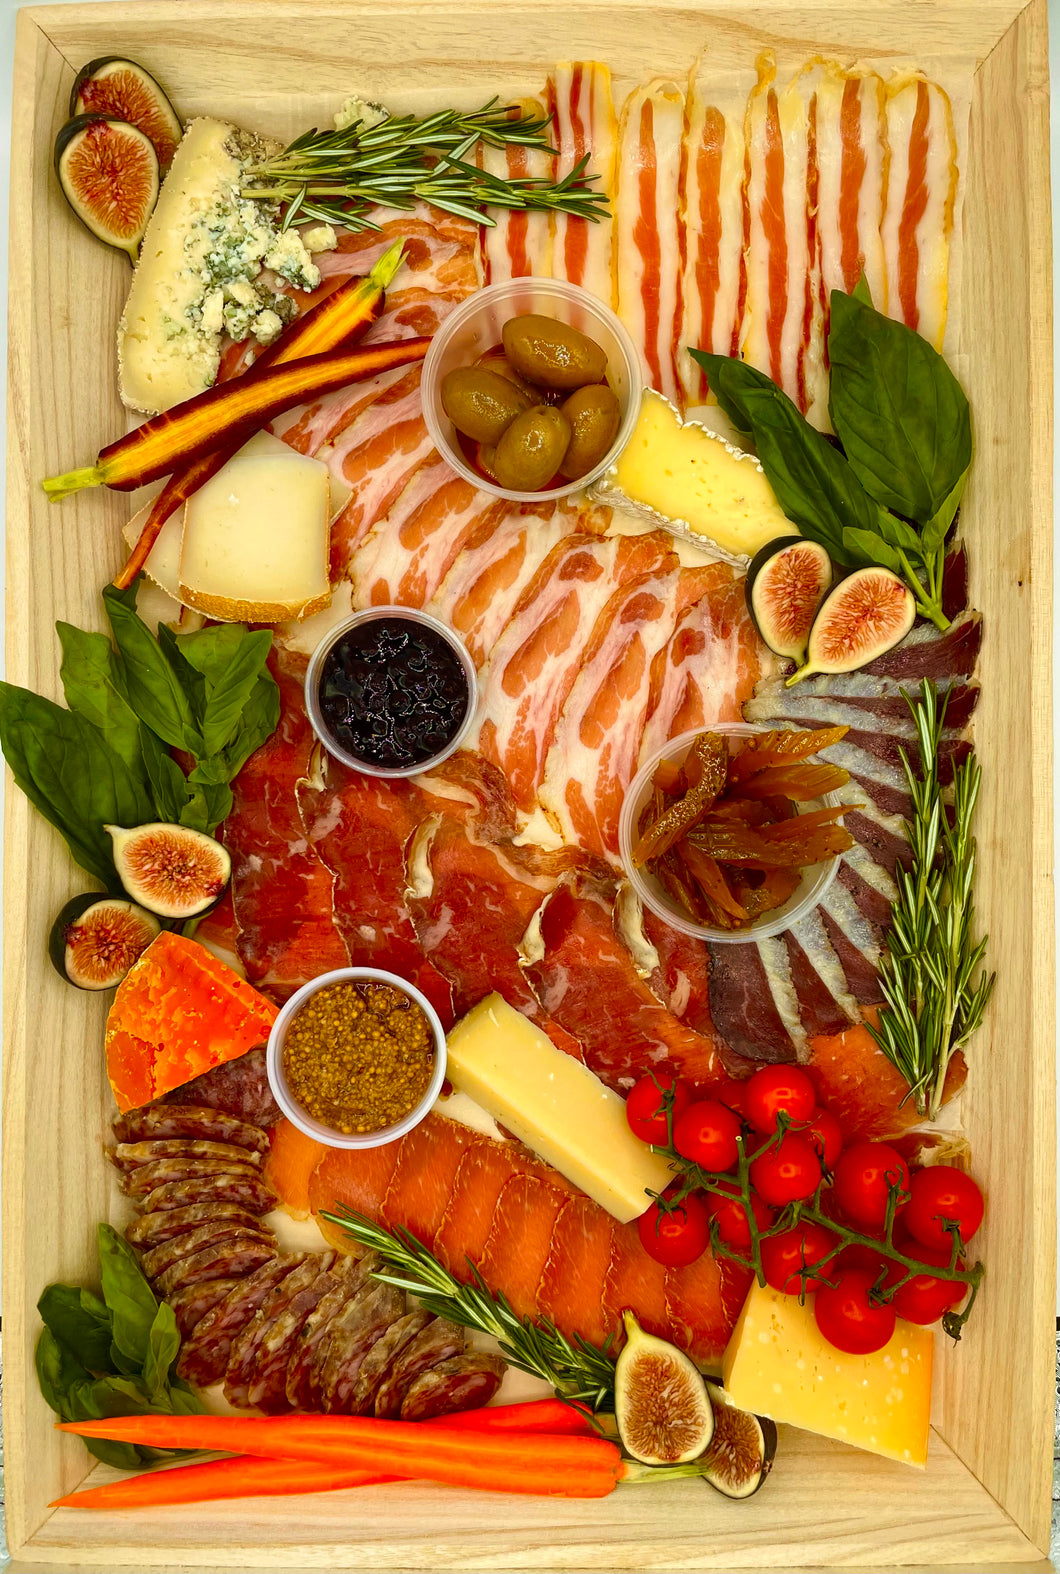 Charcuterie and Cheese Large on Wood Board - 21